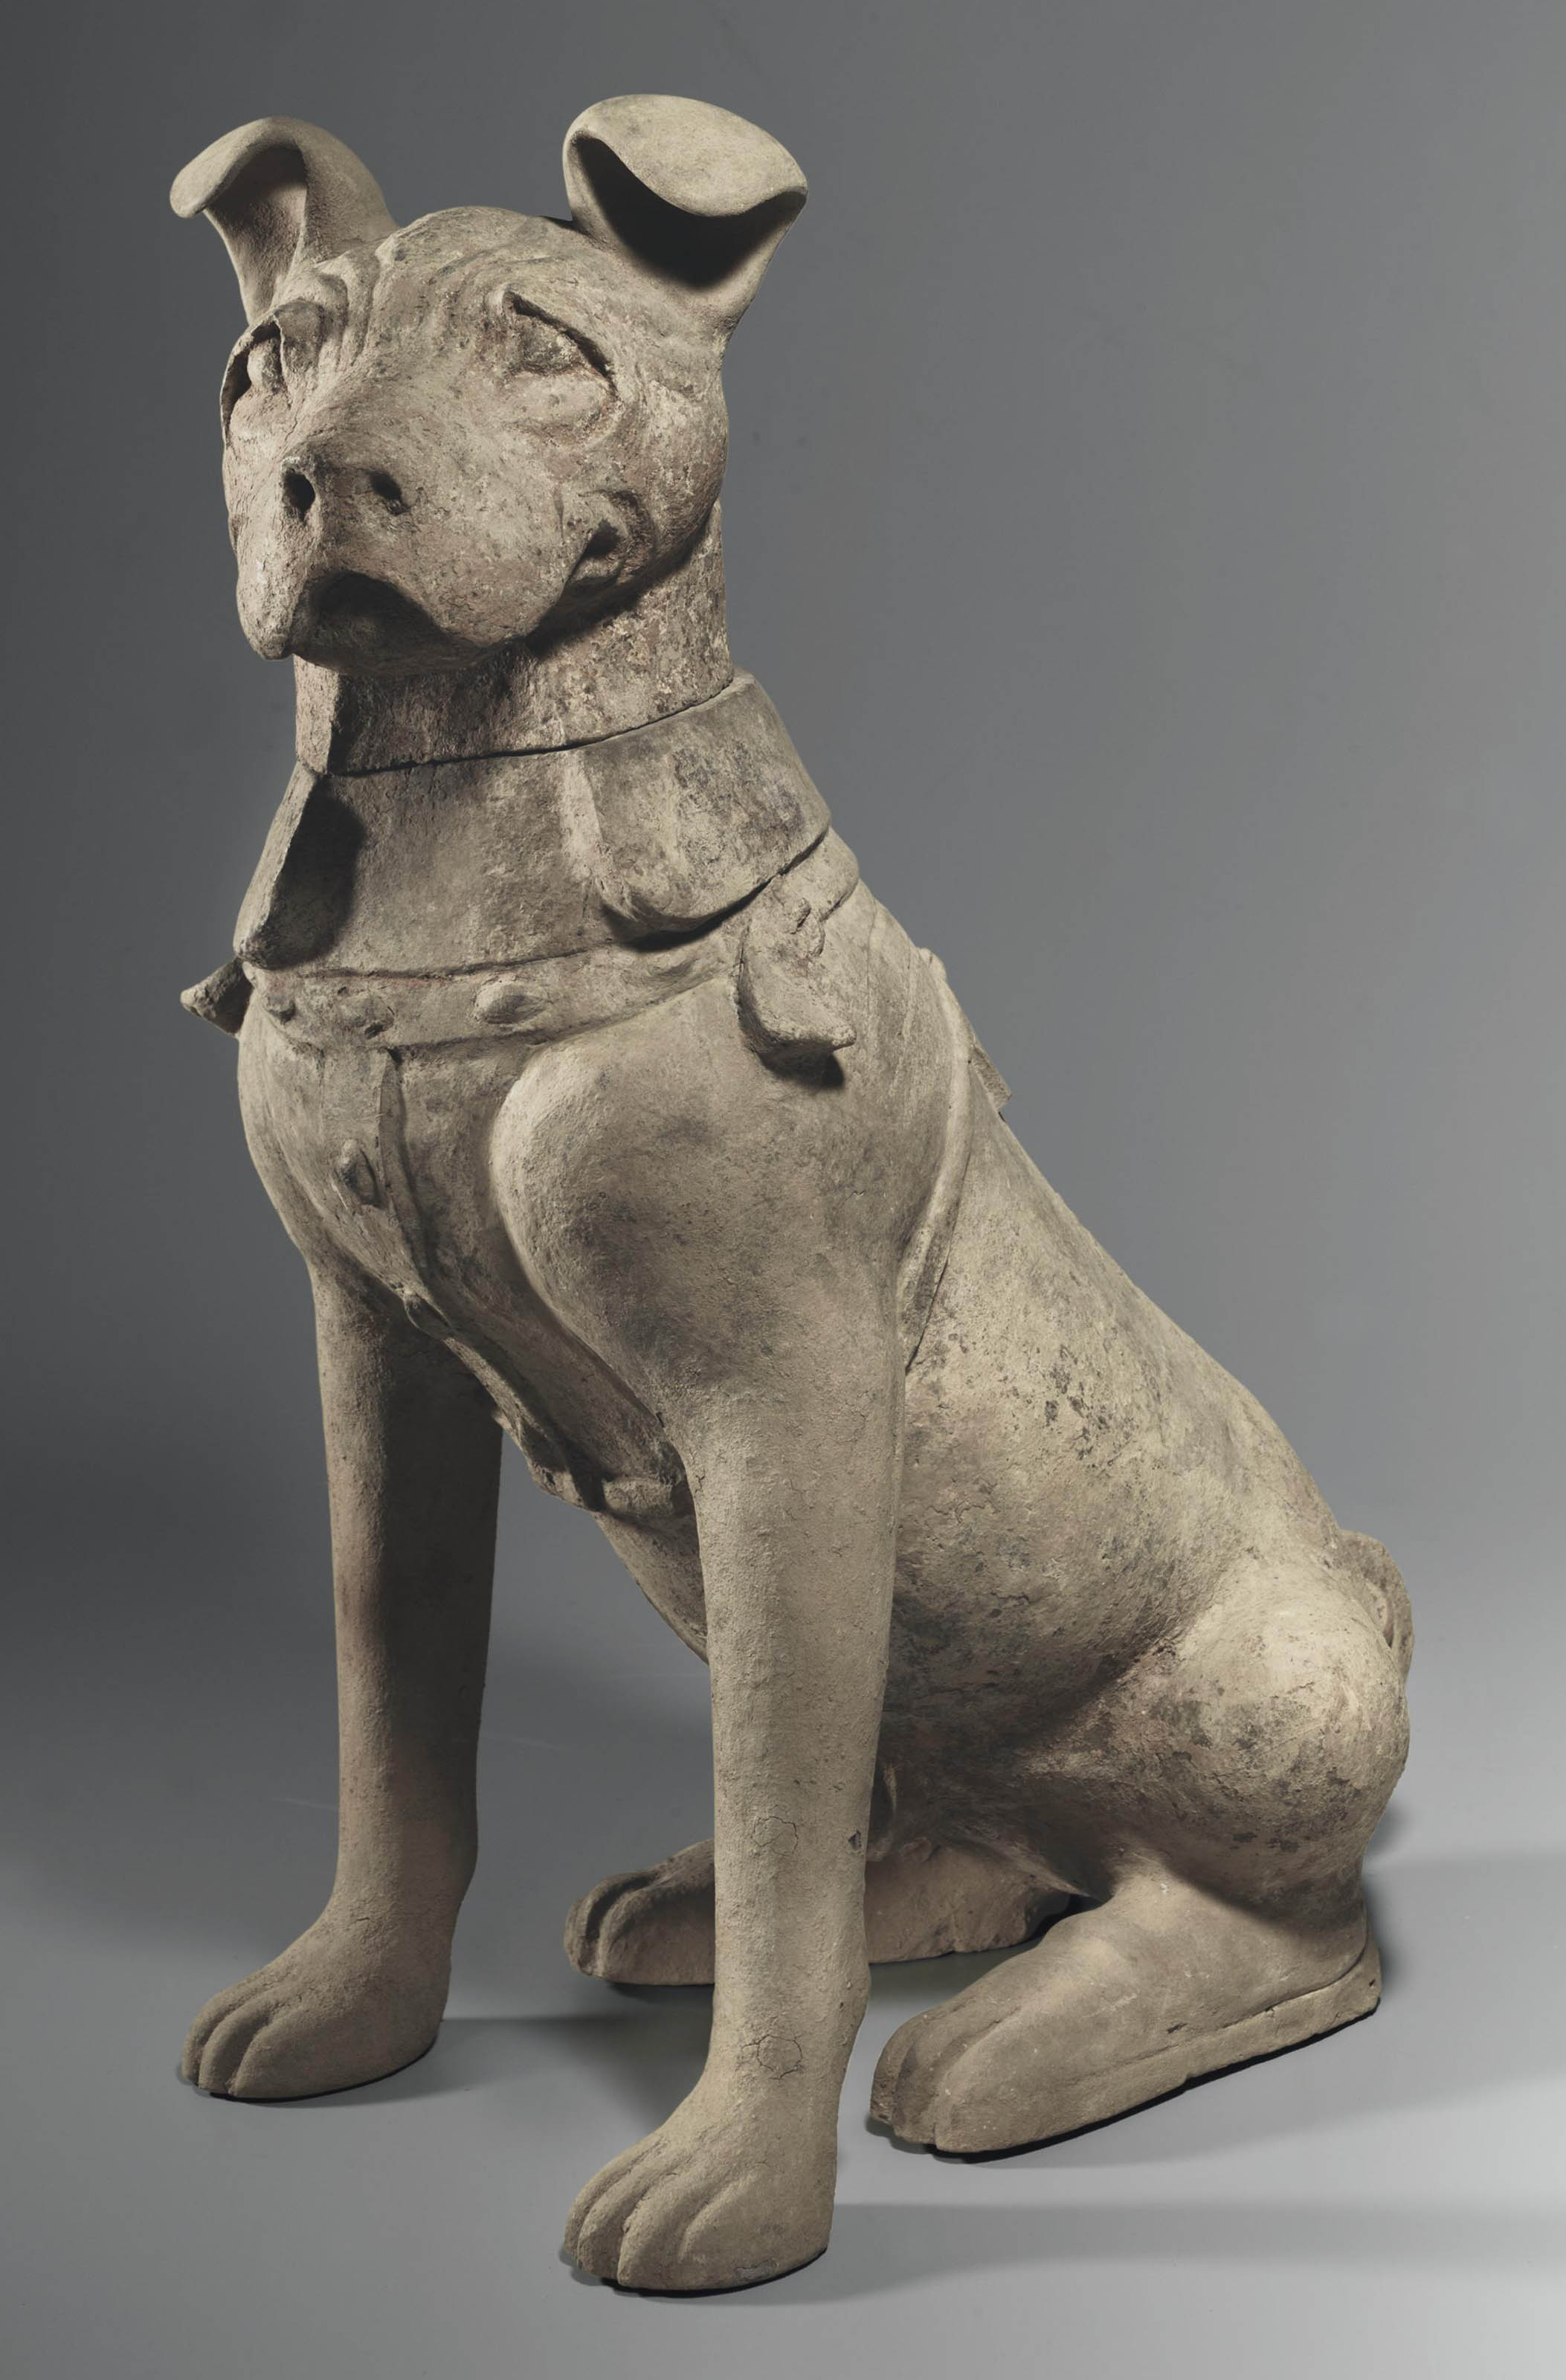 A Large Grey Pottery Figure Of A Male Guard Dog Han